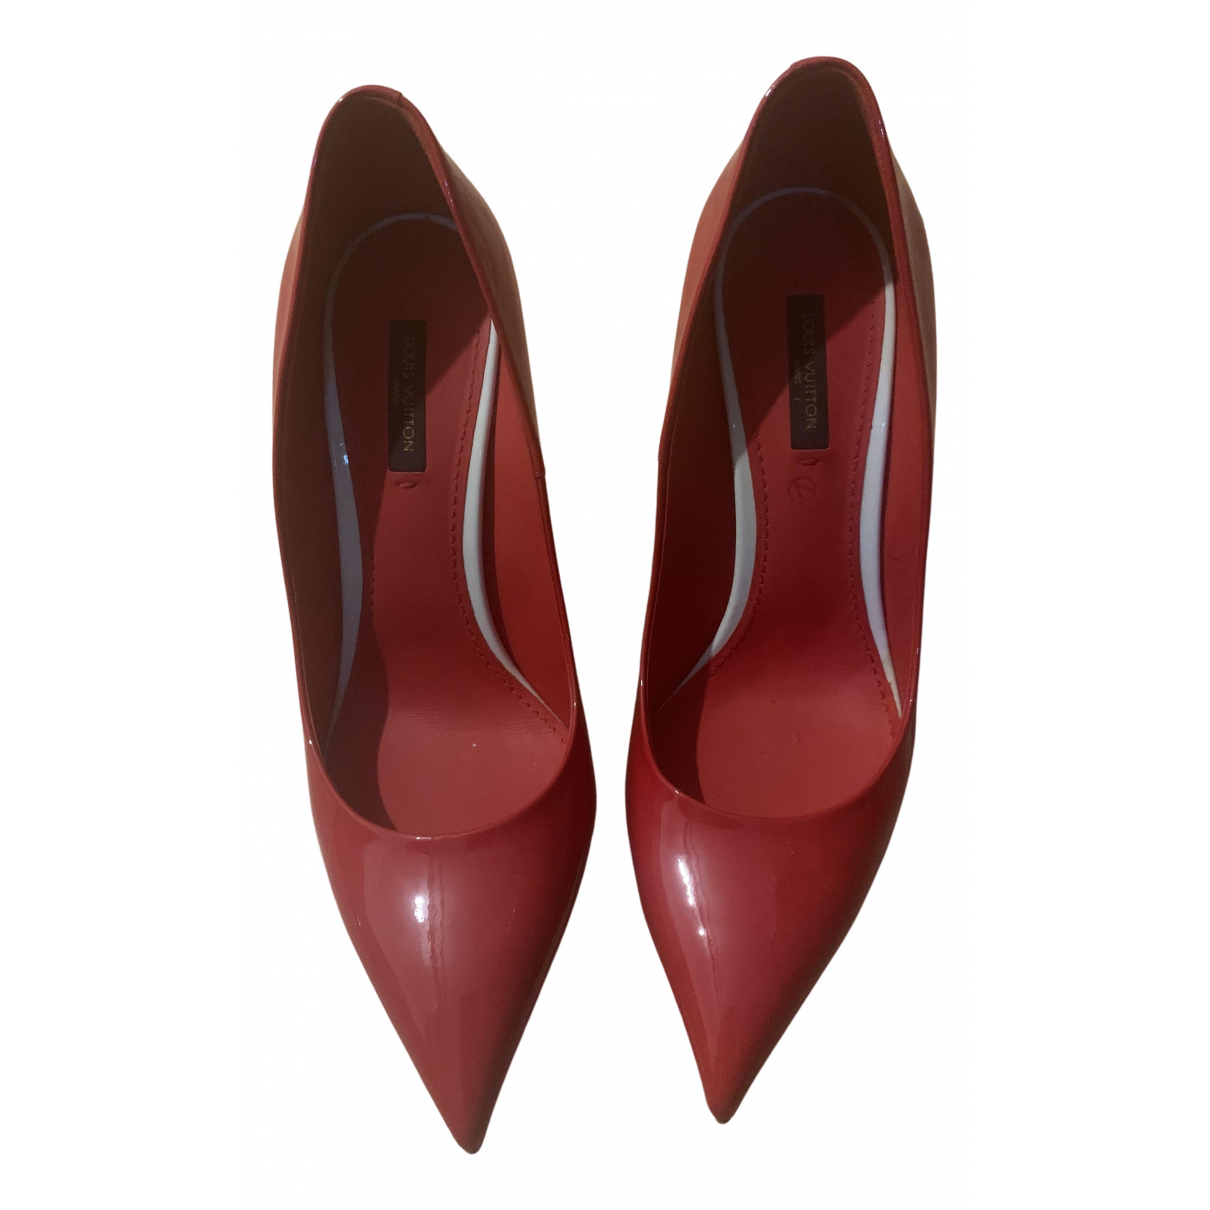 Louis Vuitton \N Red Patent leather Heels for Women 39 EU